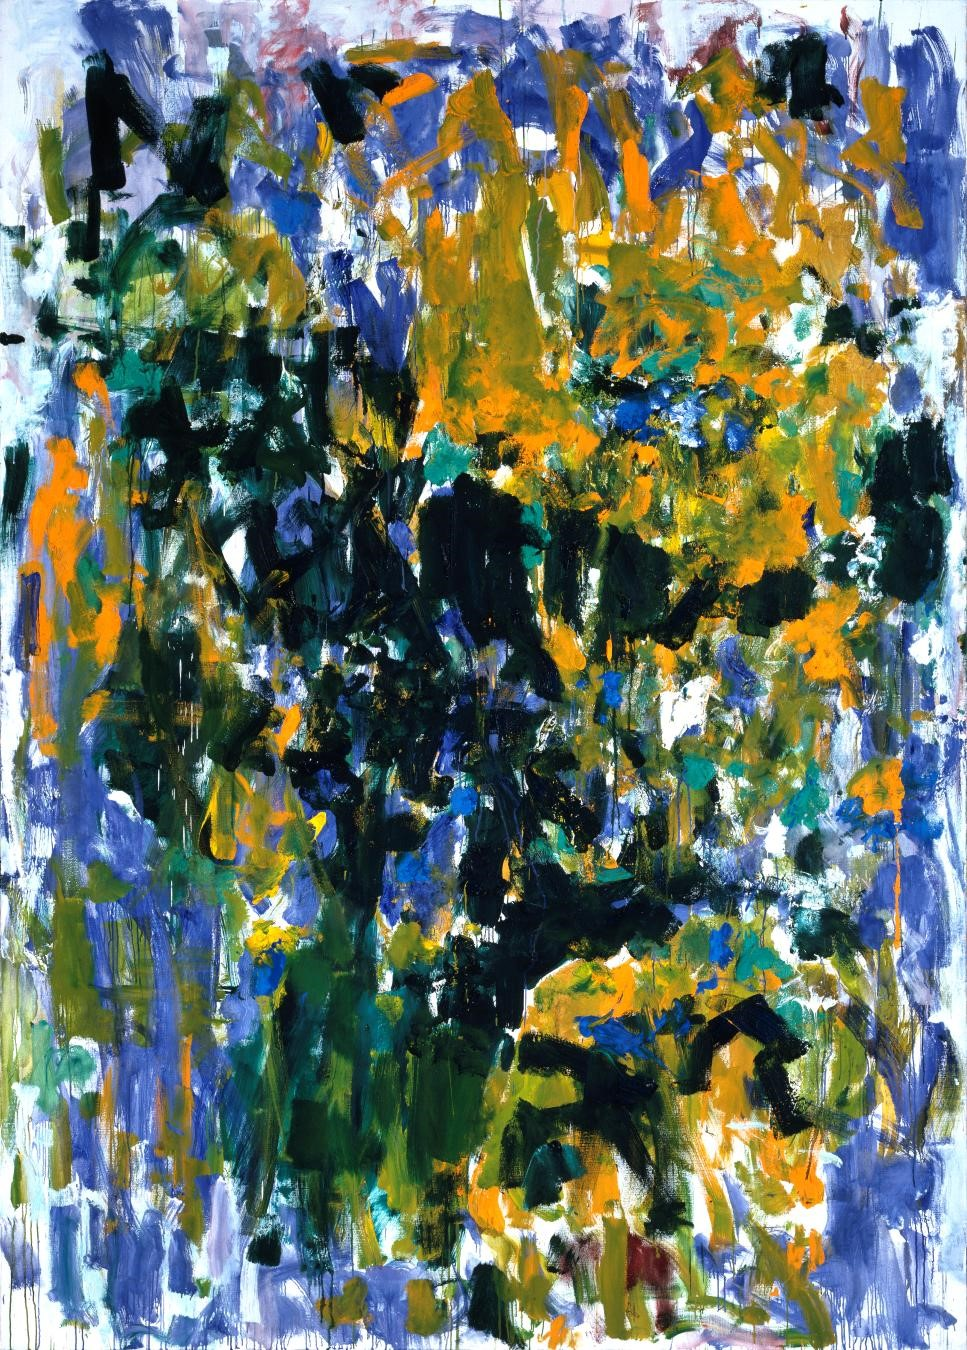 Joan Mitchell, Tournesols (Sunflowers), 1976